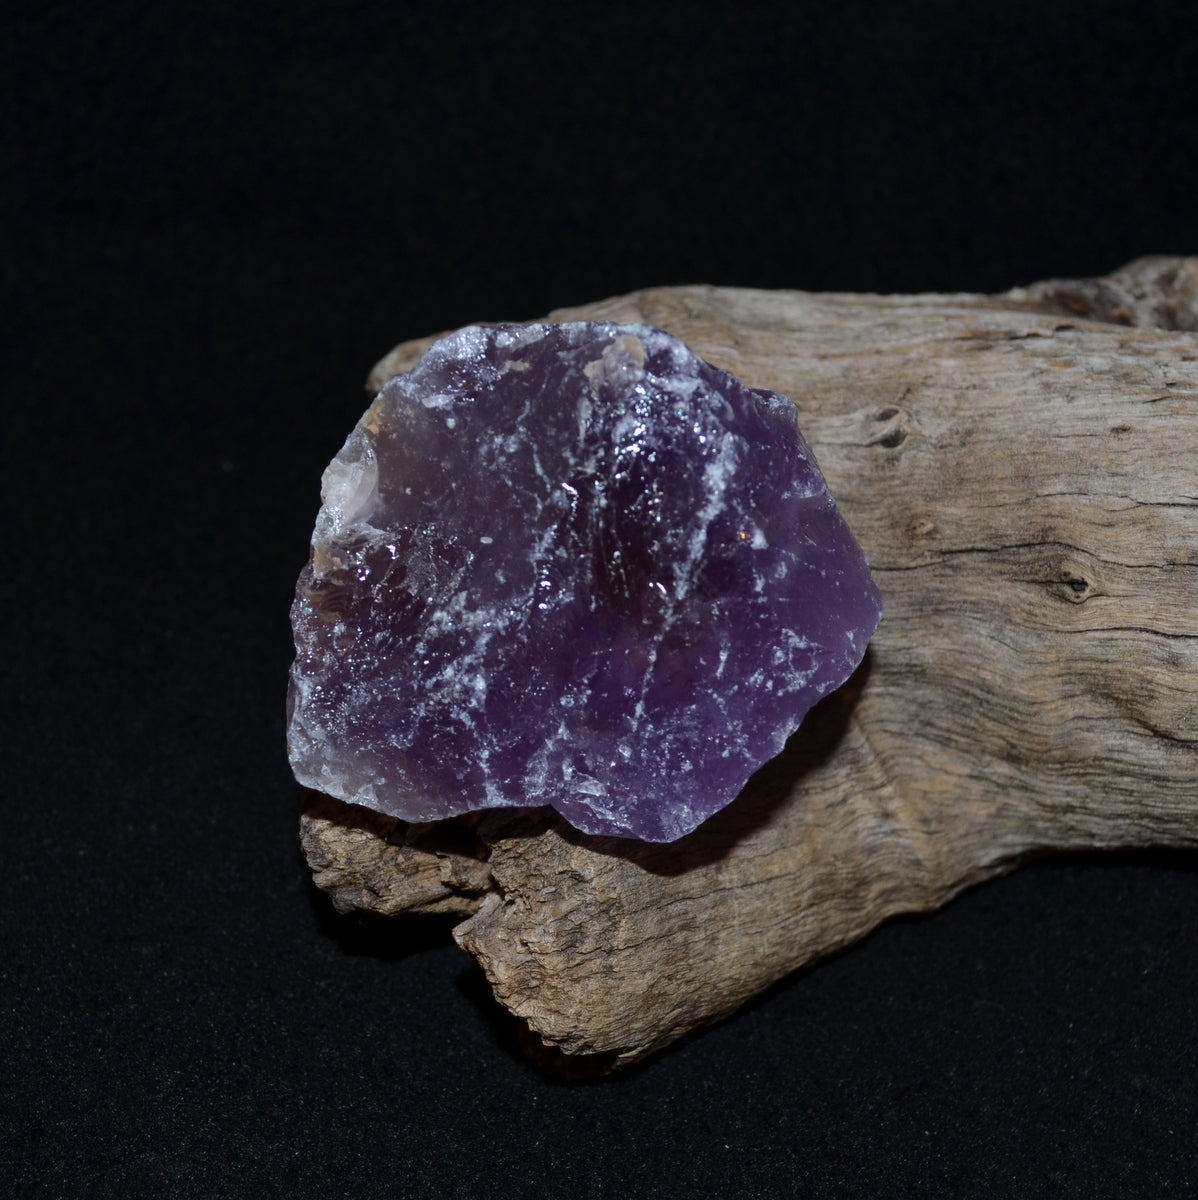 Ametrine Rough Piece - Calm Creative Abundance - Shop Now at Illiom Crystals - Afterpay Available